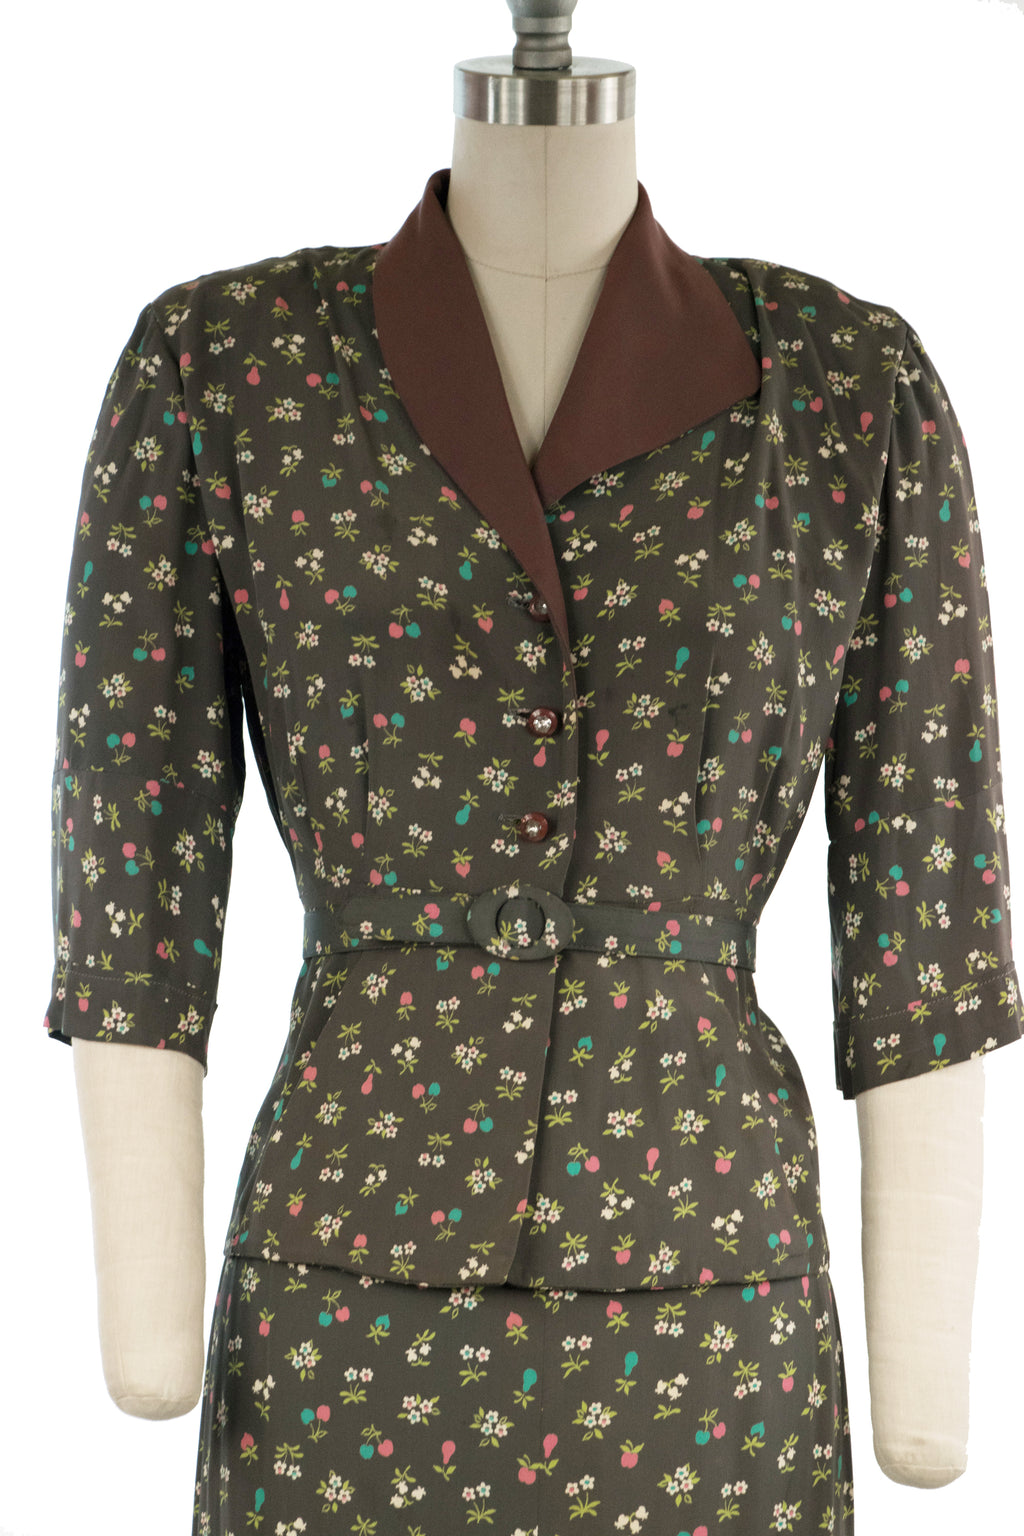 Charming 1950s Novelty Fruit Print Rayon Dress Set of Jacket and Skirt